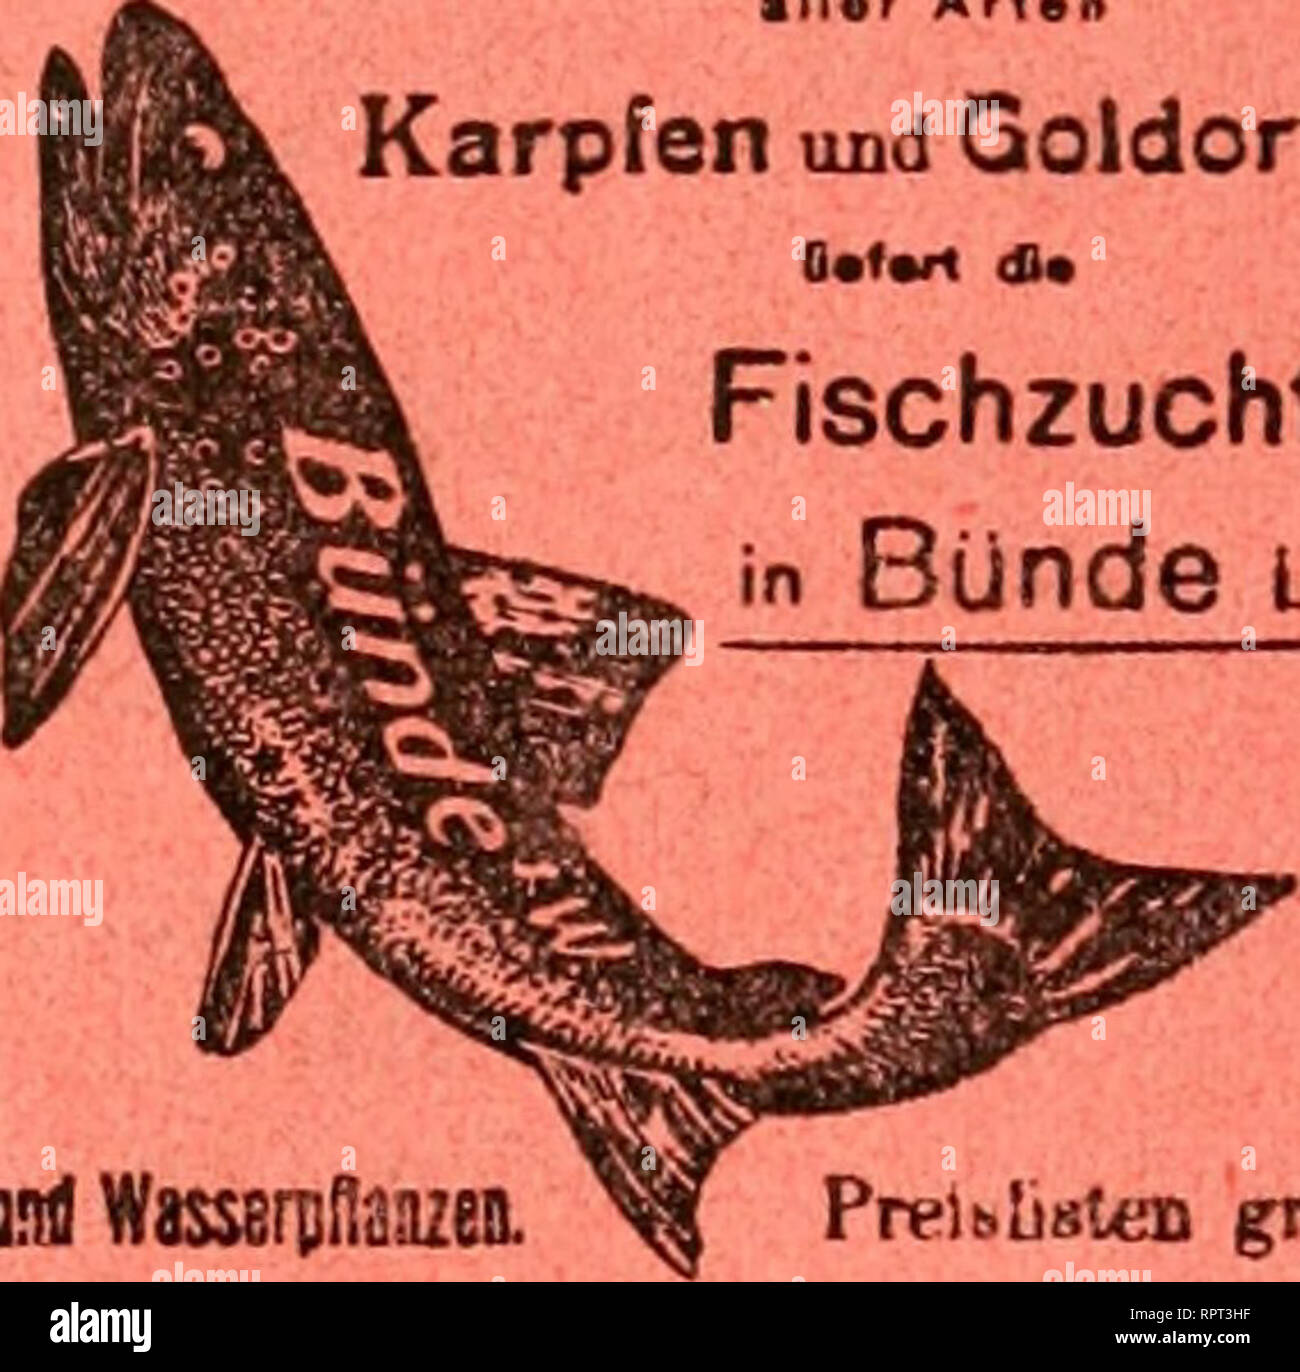 . Allgemeine Fischerei-Zeitung. Beste Forellen Eier, Brut und Setzlinge • Mar Arten CS U § a < Karpfen und Qoldorfen Fischzucht in Bünde l w.. Please note that these images are extracted from scanned page images that may have been digitally enhanced for readability - coloration and appearance of these illustrations may not perfectly resemble the original work.. München [etc. ] Landesfischereiverband Bayern [e - Stock Image